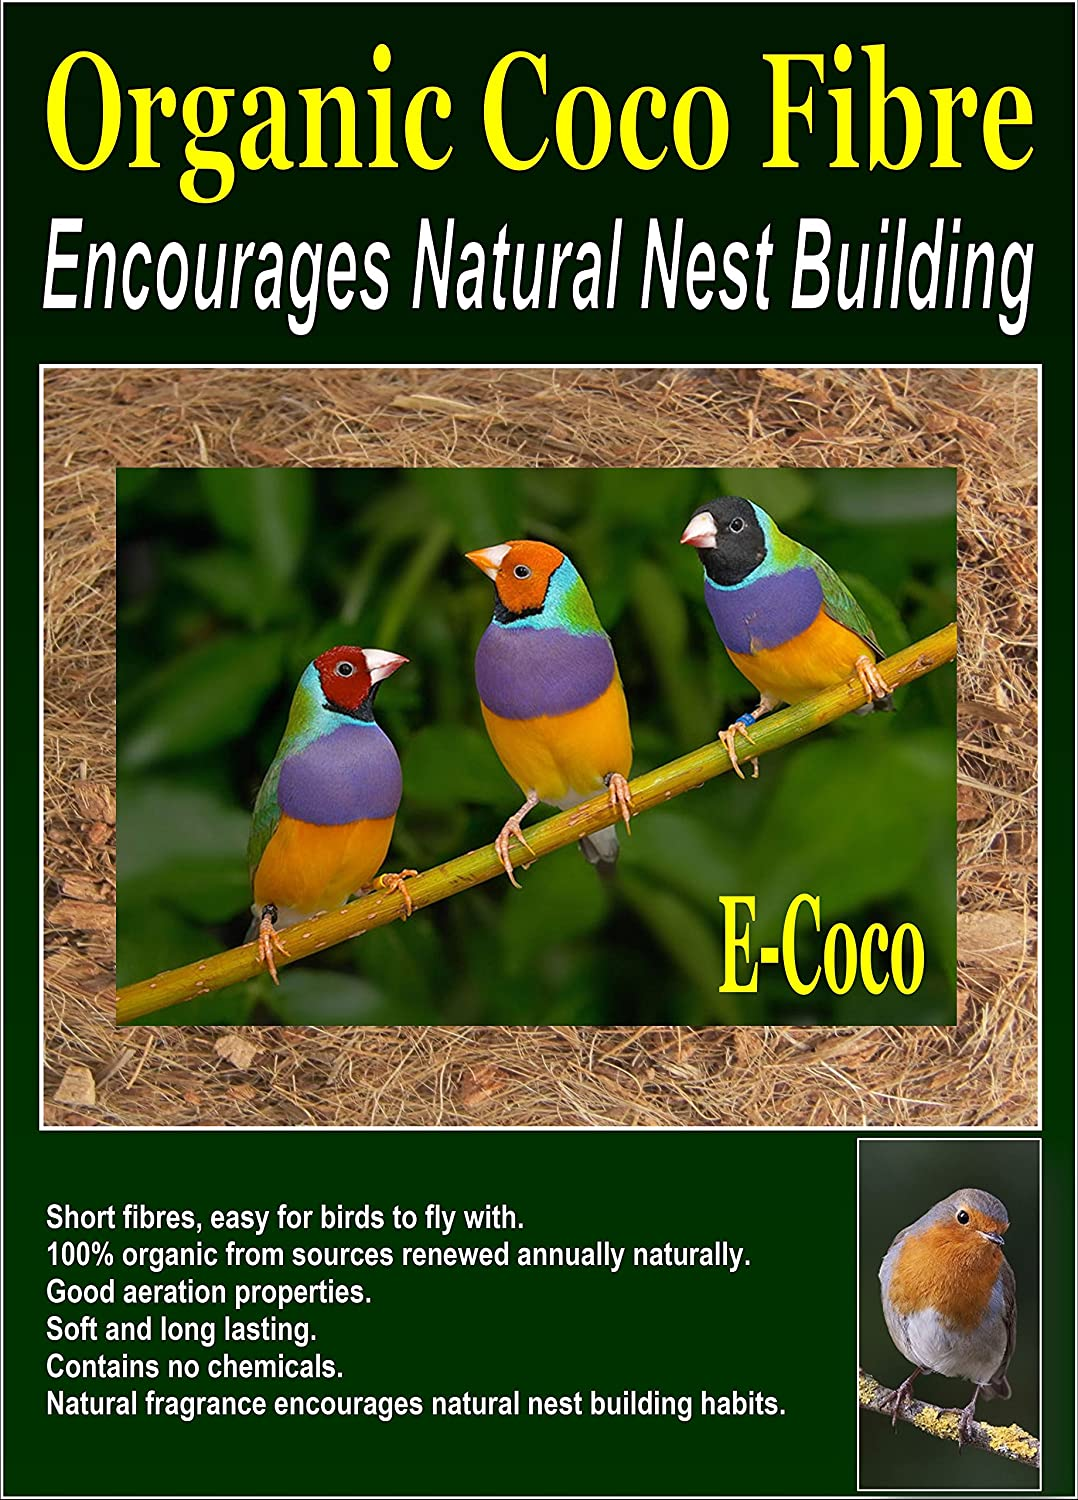 BIRD NESTING MATERIAL - BIRD NEST FIBRE - FOR USE IN BIRD AVIARY, BOX, HIDE, HOUSE & CAGE (1BAG) E-COCO PRODUCTS UK